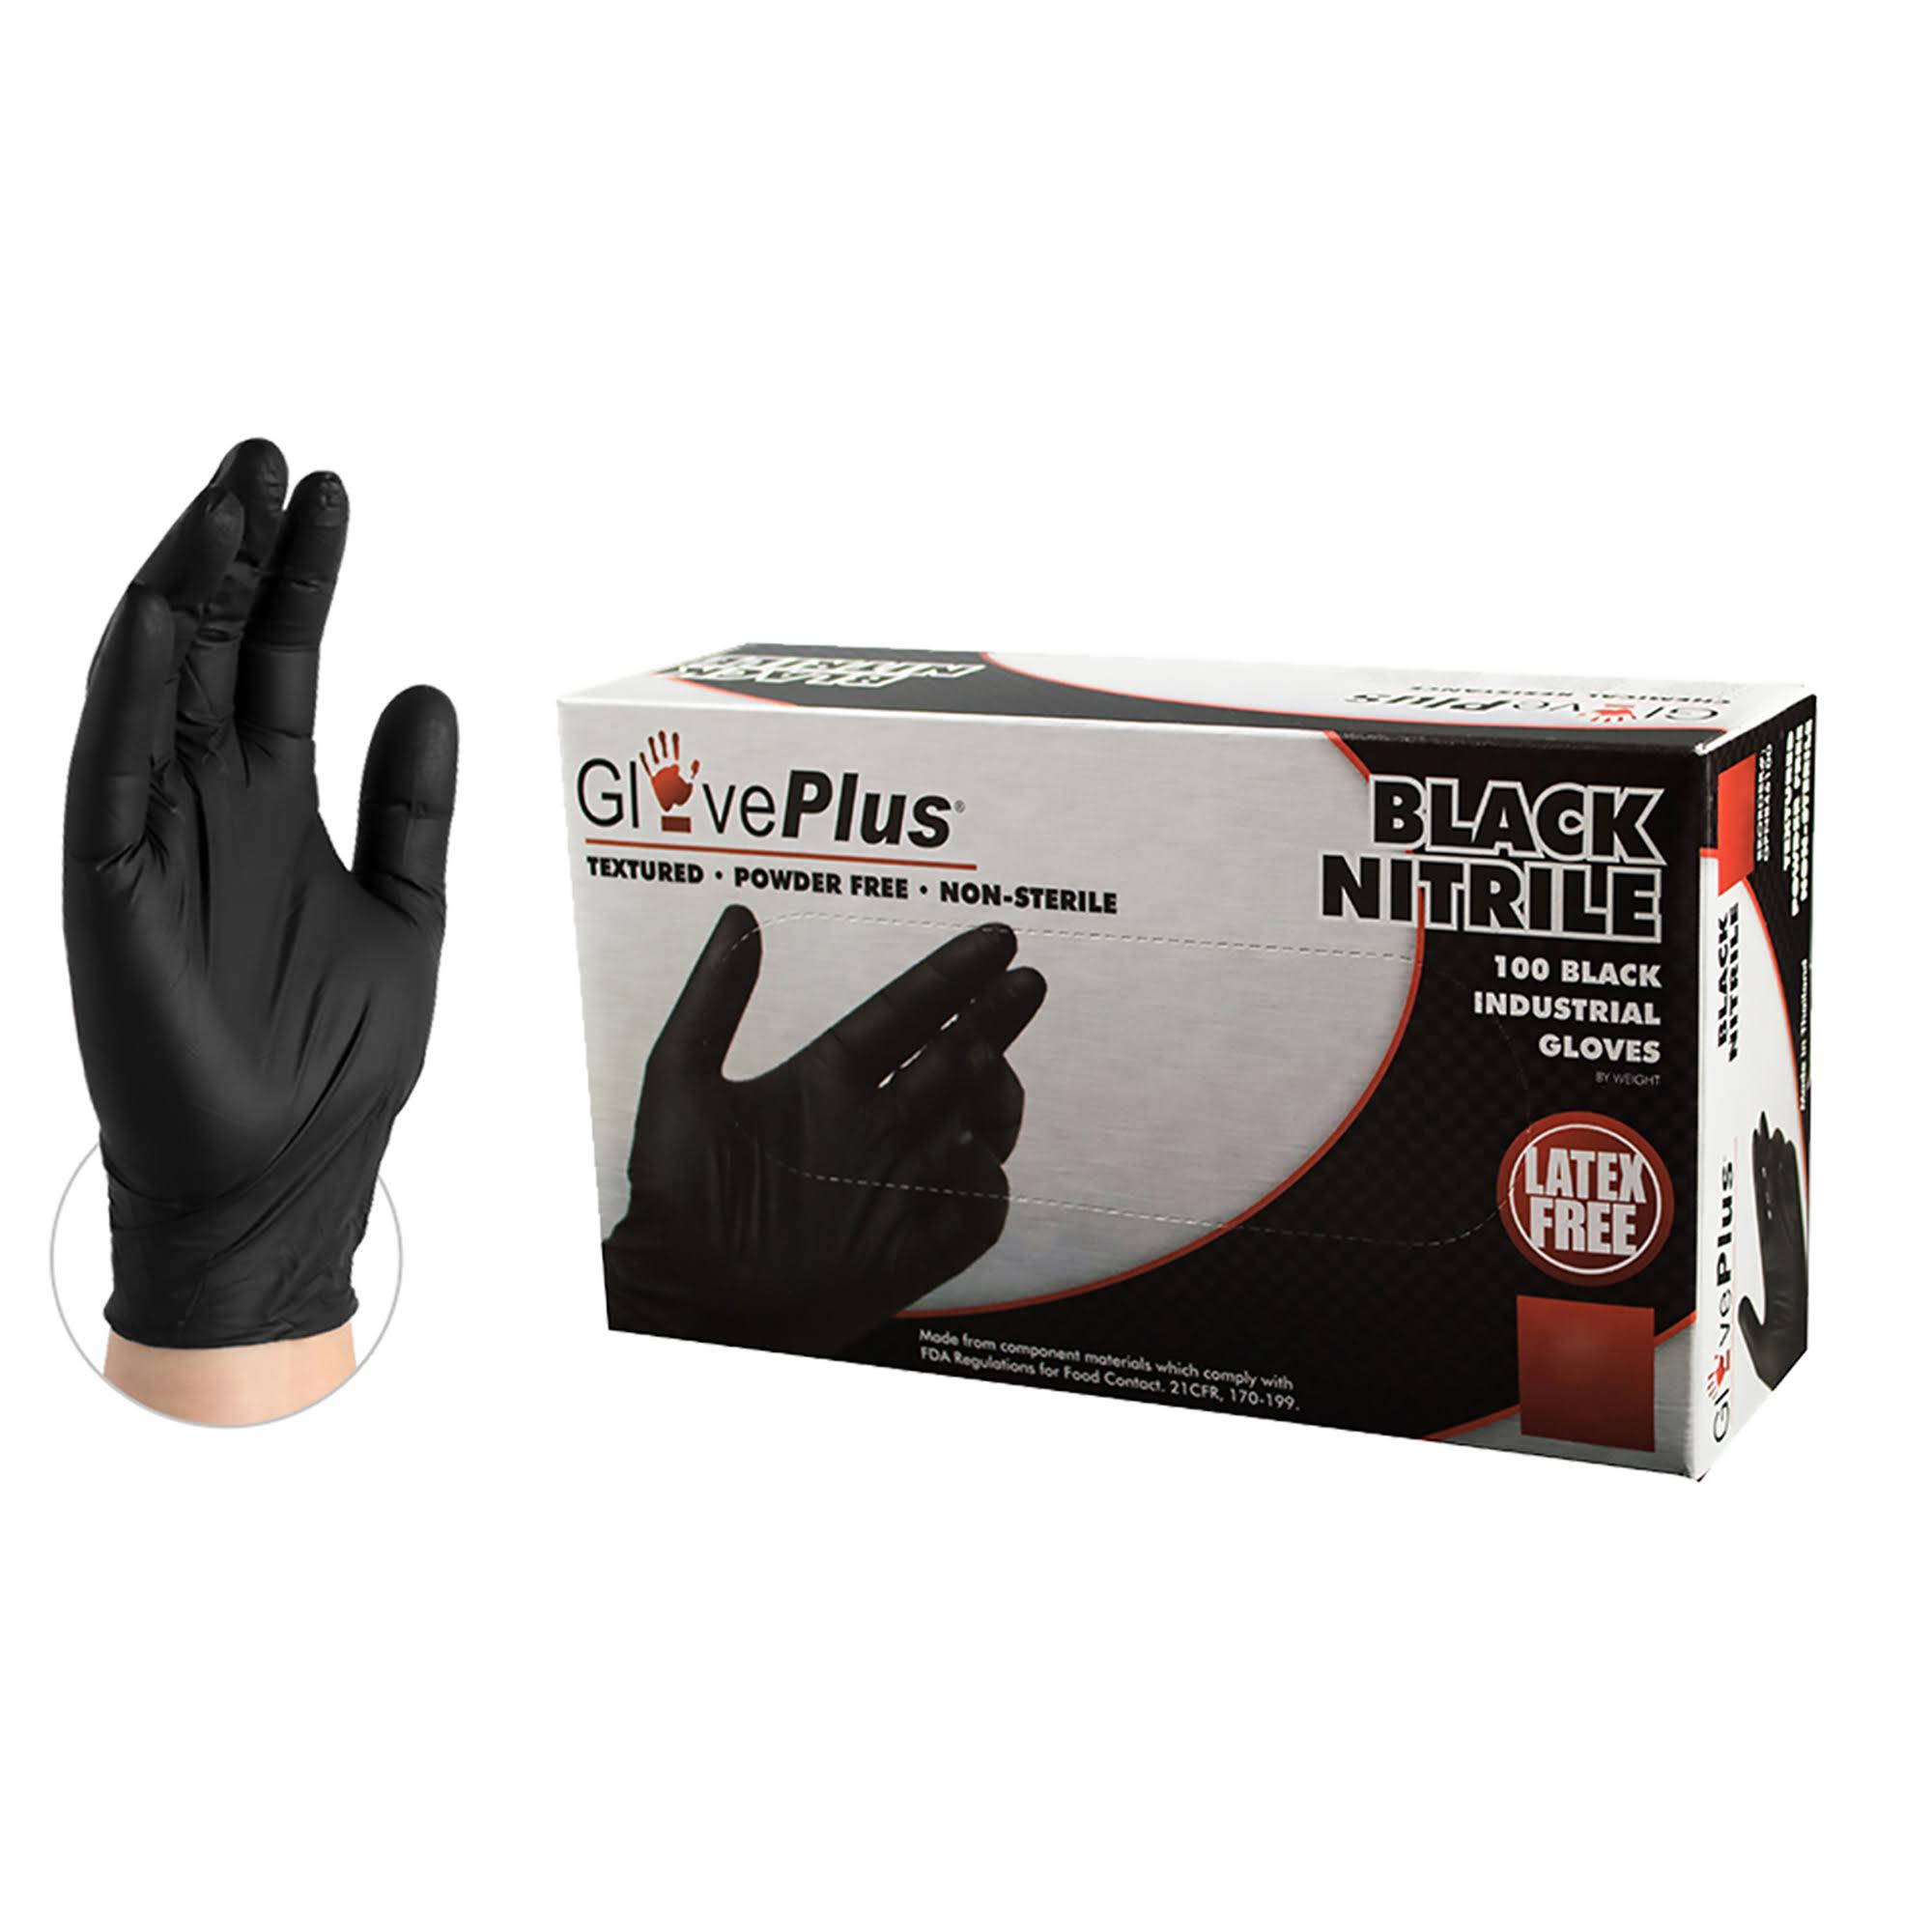 Gloveplus Textured Nitrile Glove Large - Black, 100 Pack